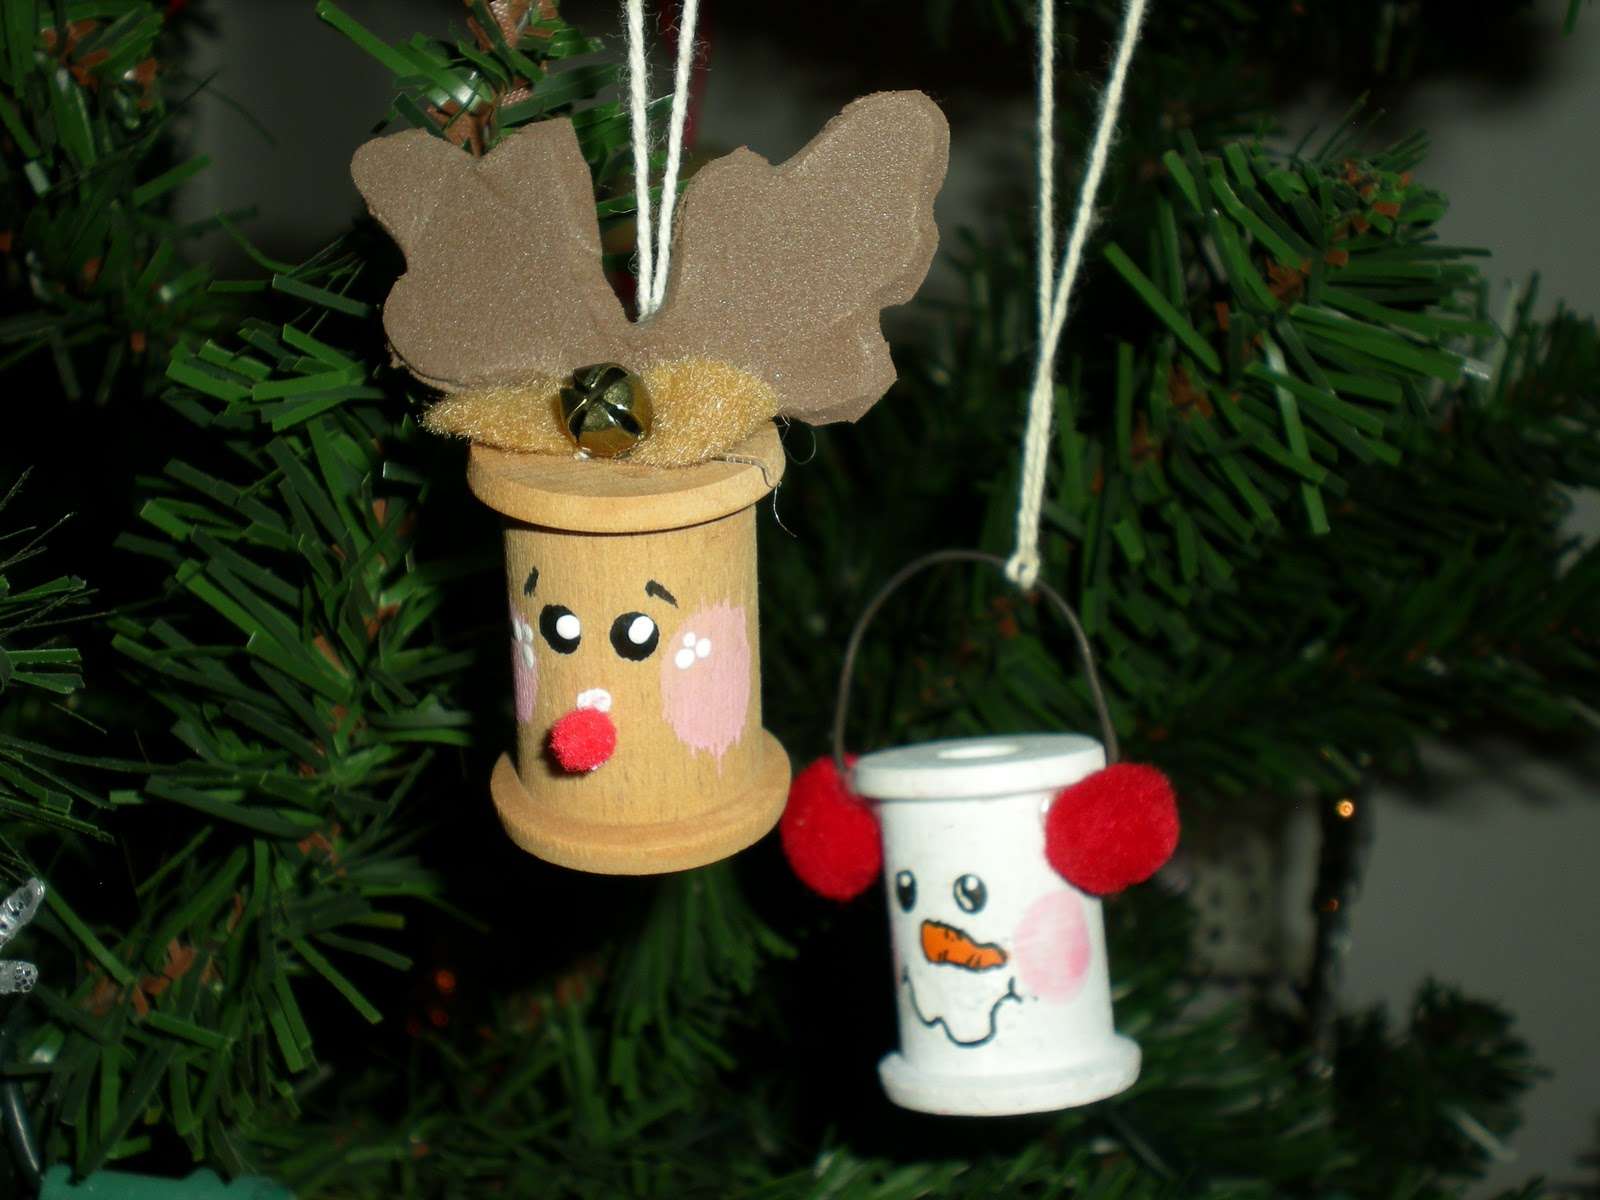 25 days of christmas crafts day 5 homemade christmas for Christmas decorations easy to make at home